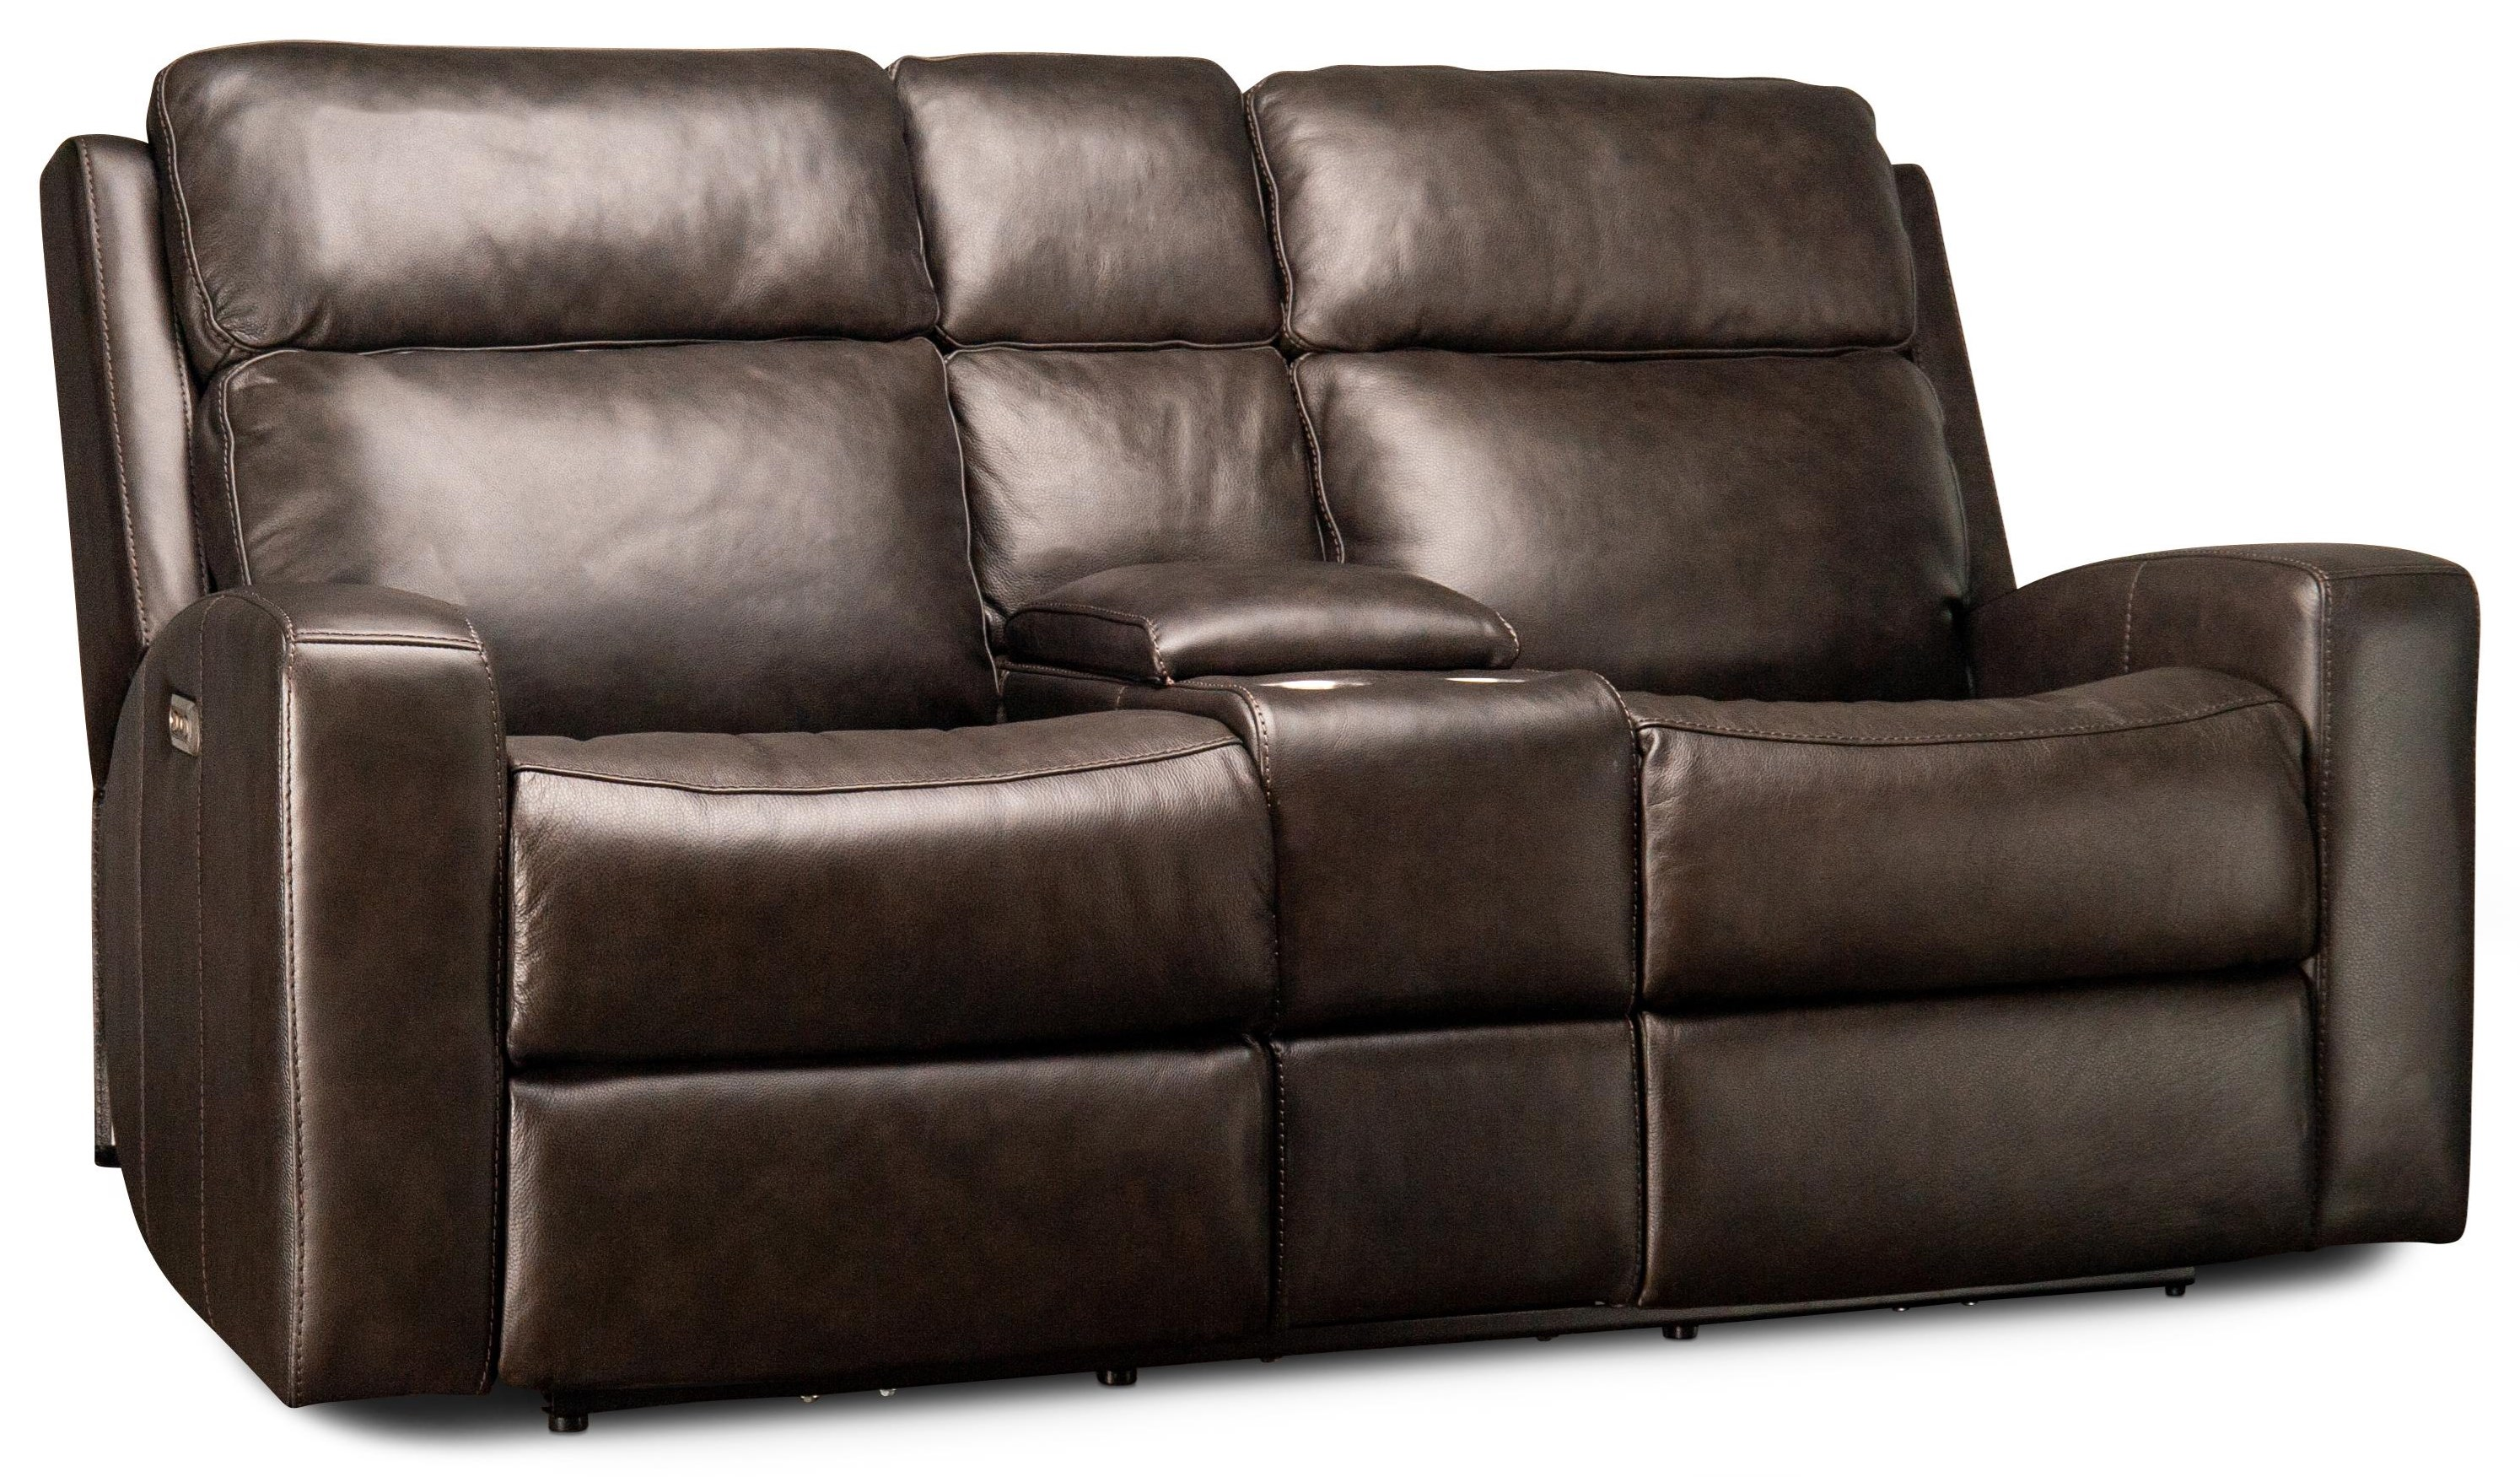 Cordelia Cordelia Leather Match Power Loveseat by Flexsteel Wynwood Collection at Morris Home